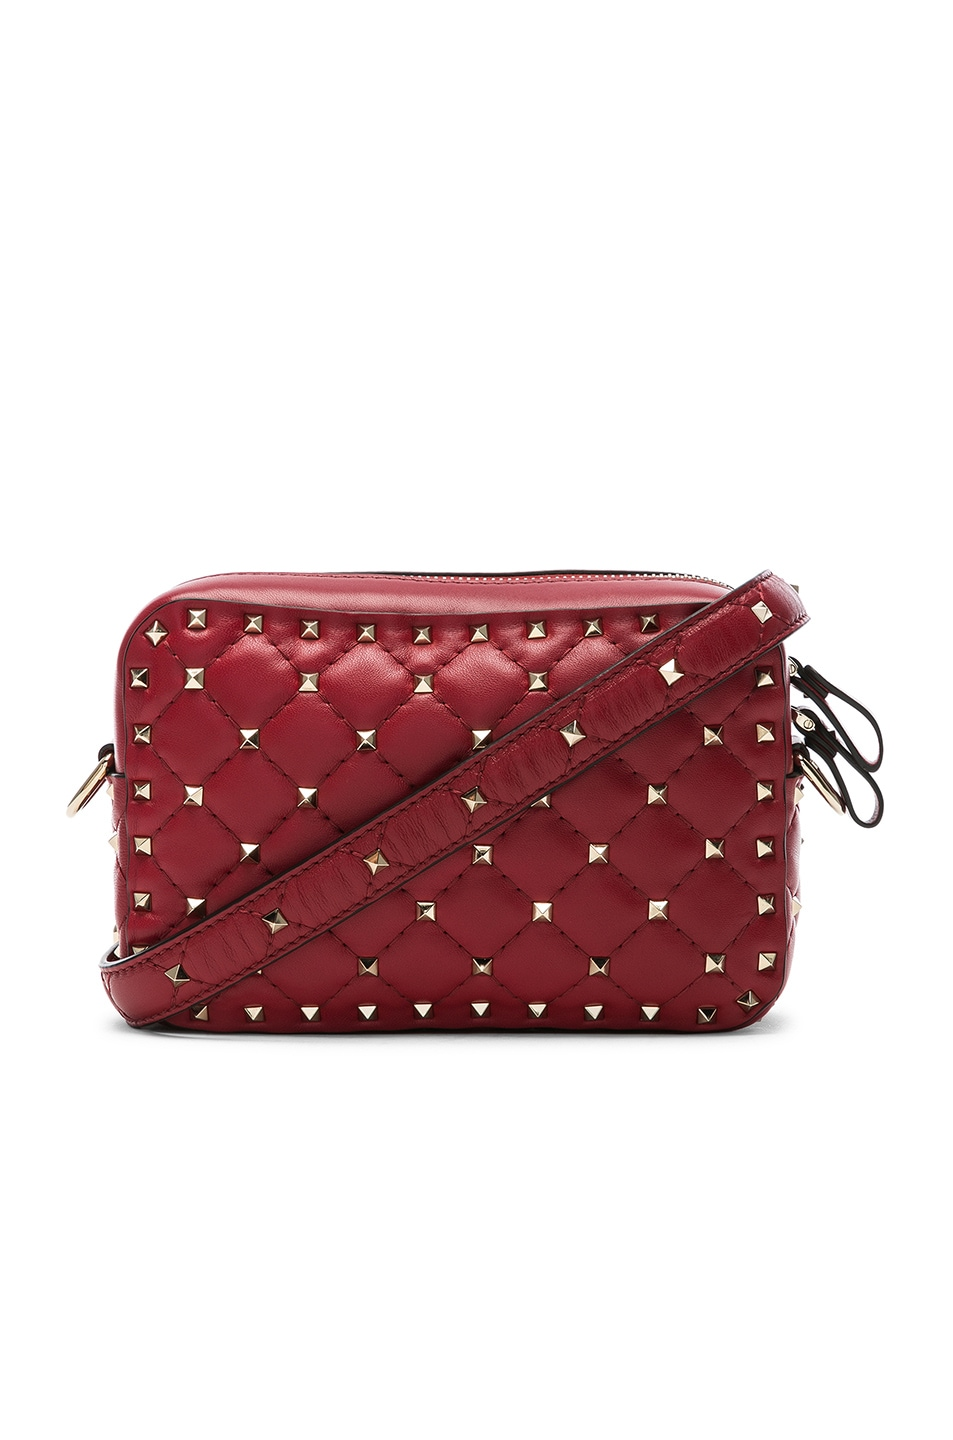 Image 1 of Valentino Rockstud Spike Crossbody Bag in Red